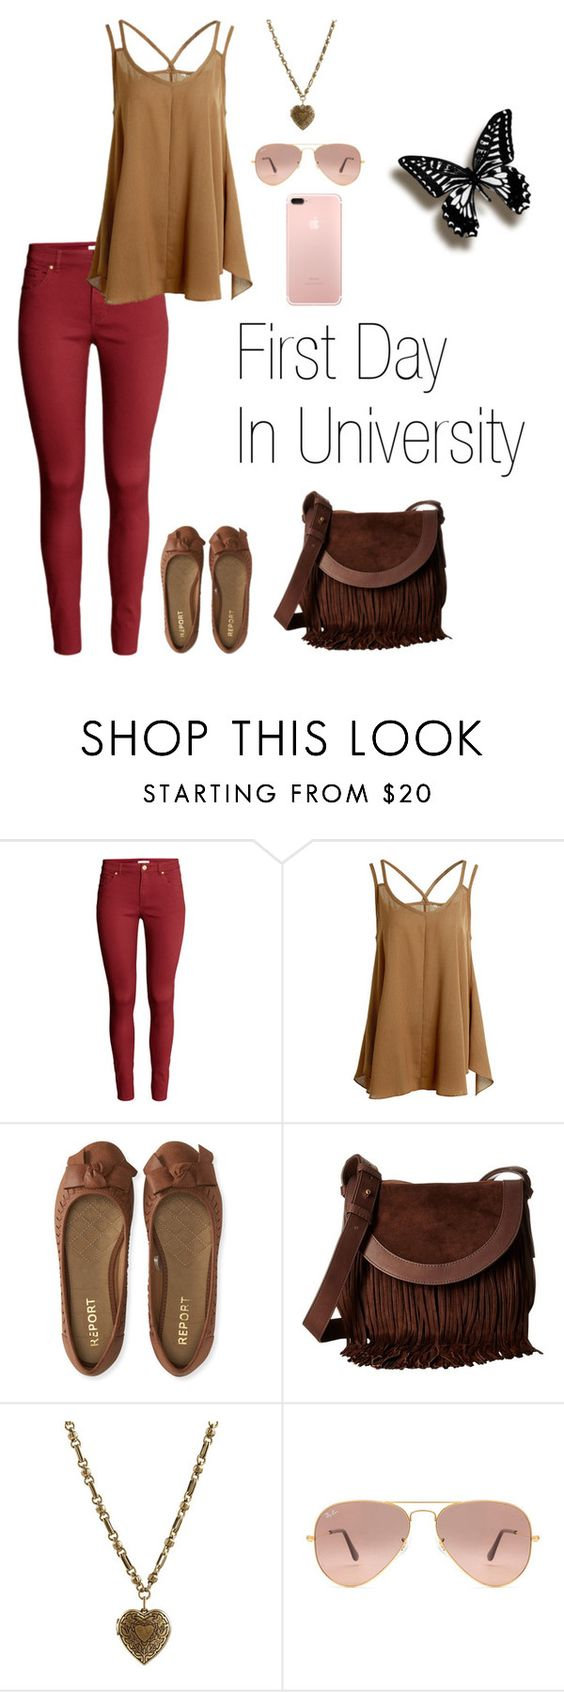 """Joanne"" by caah-carli ❤ liked on Polyvore featuring H&M, Aéropostale, Frye, Etro and Ray-Ban"